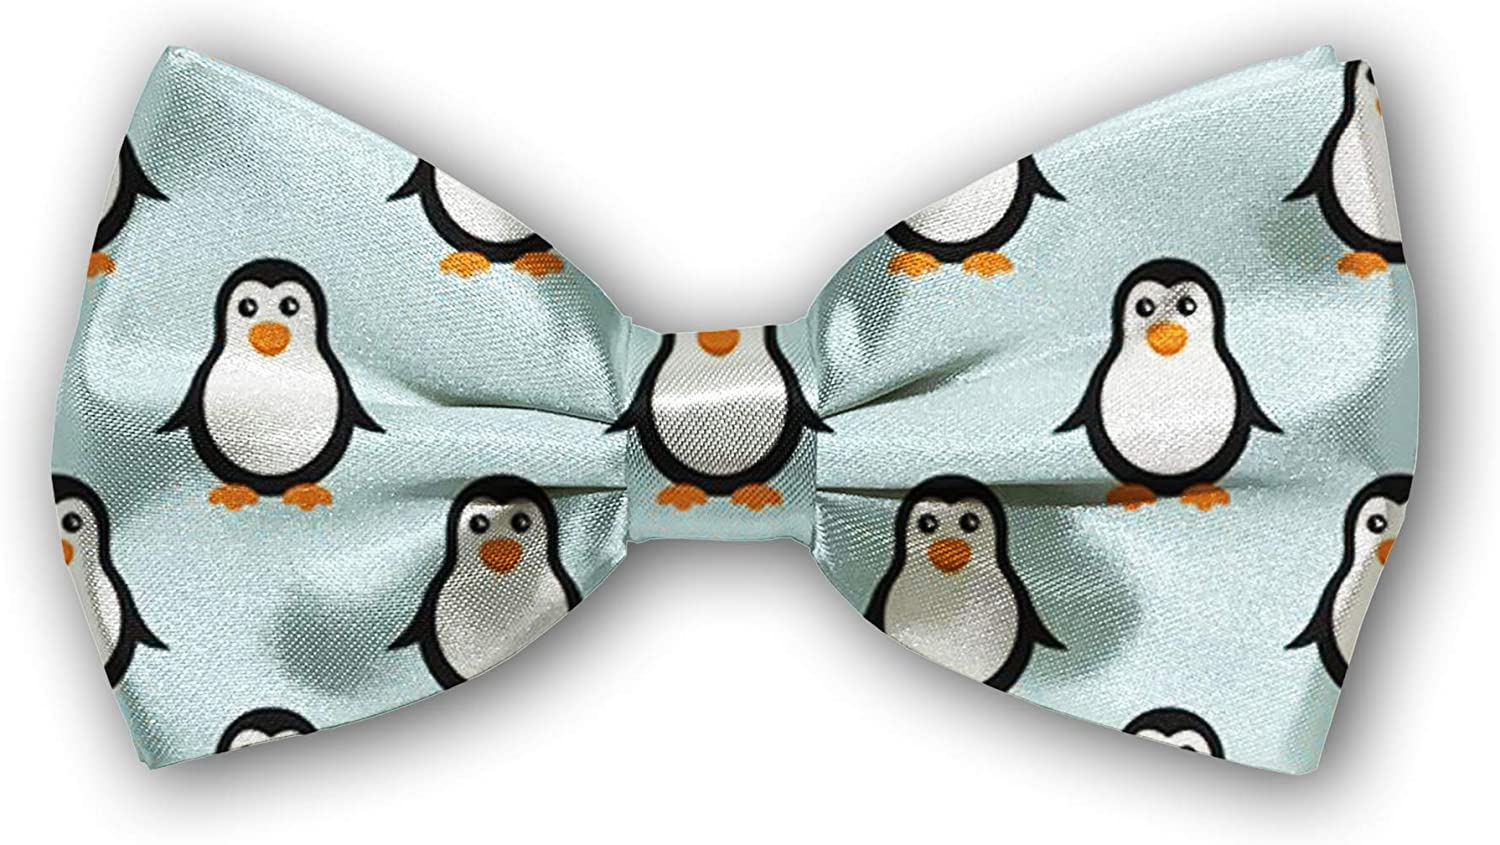 Bow Tie Tuxedo Butterfly Cotton Ranking TOP2 Bowtie for Boys Mens Adjustable shopping